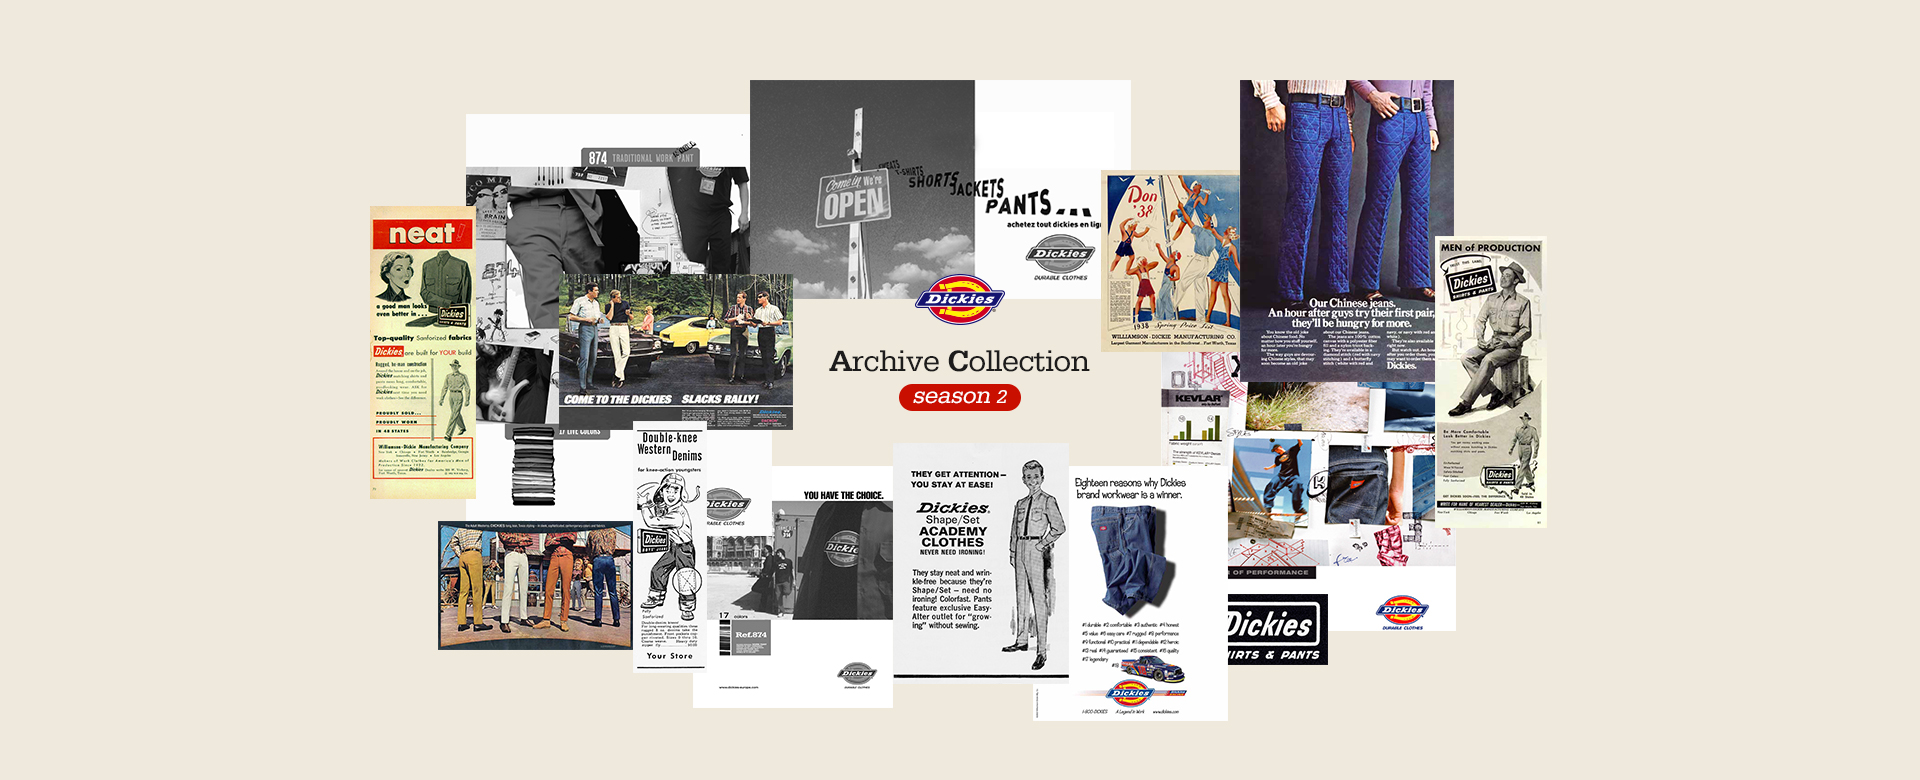 Archive collection season 2